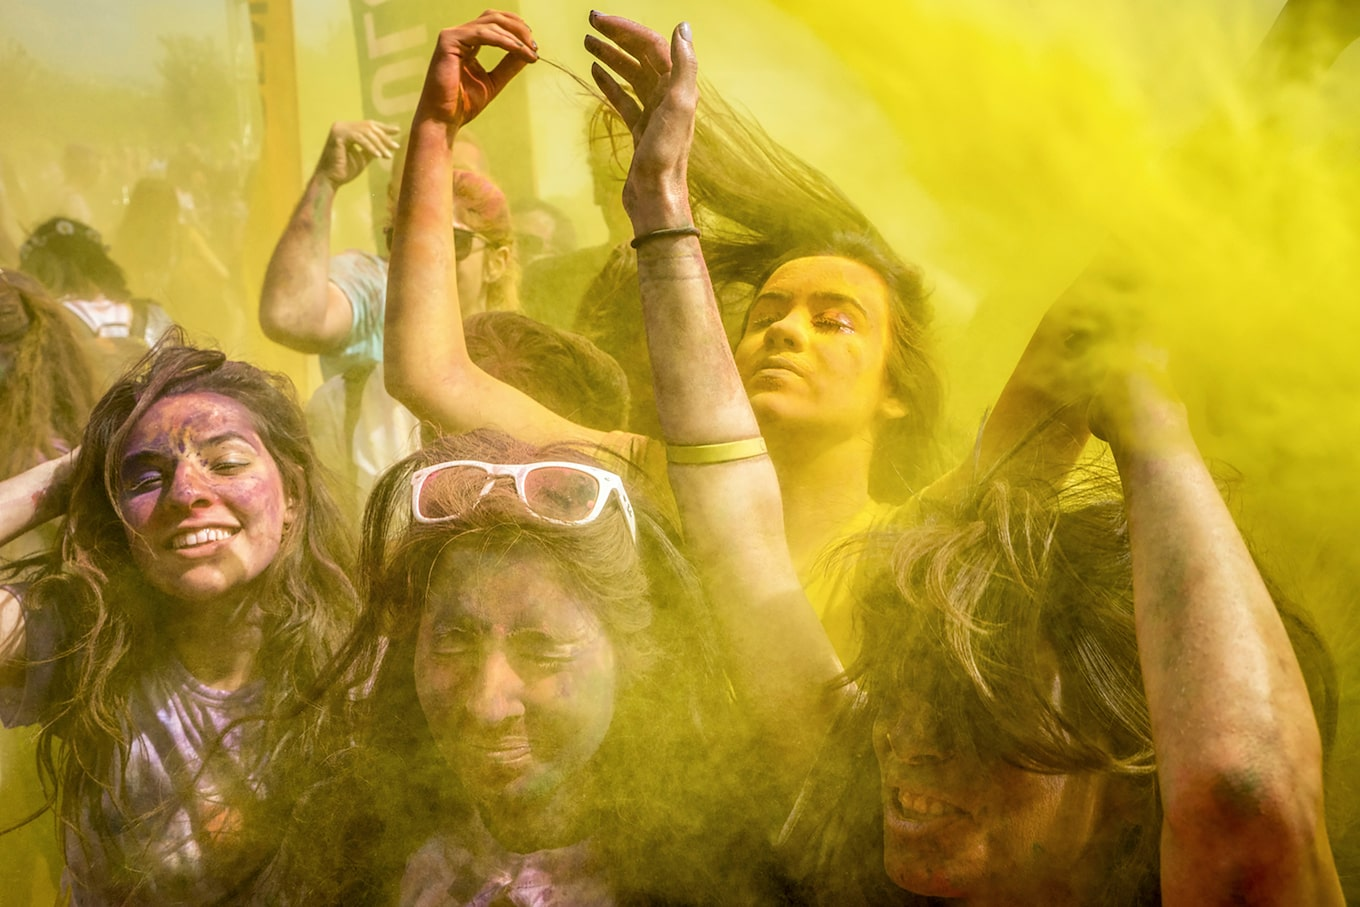 murat-pulat-sony-alpha-7II-young-revellers-dancing-in-cloud-of-yellow-dust